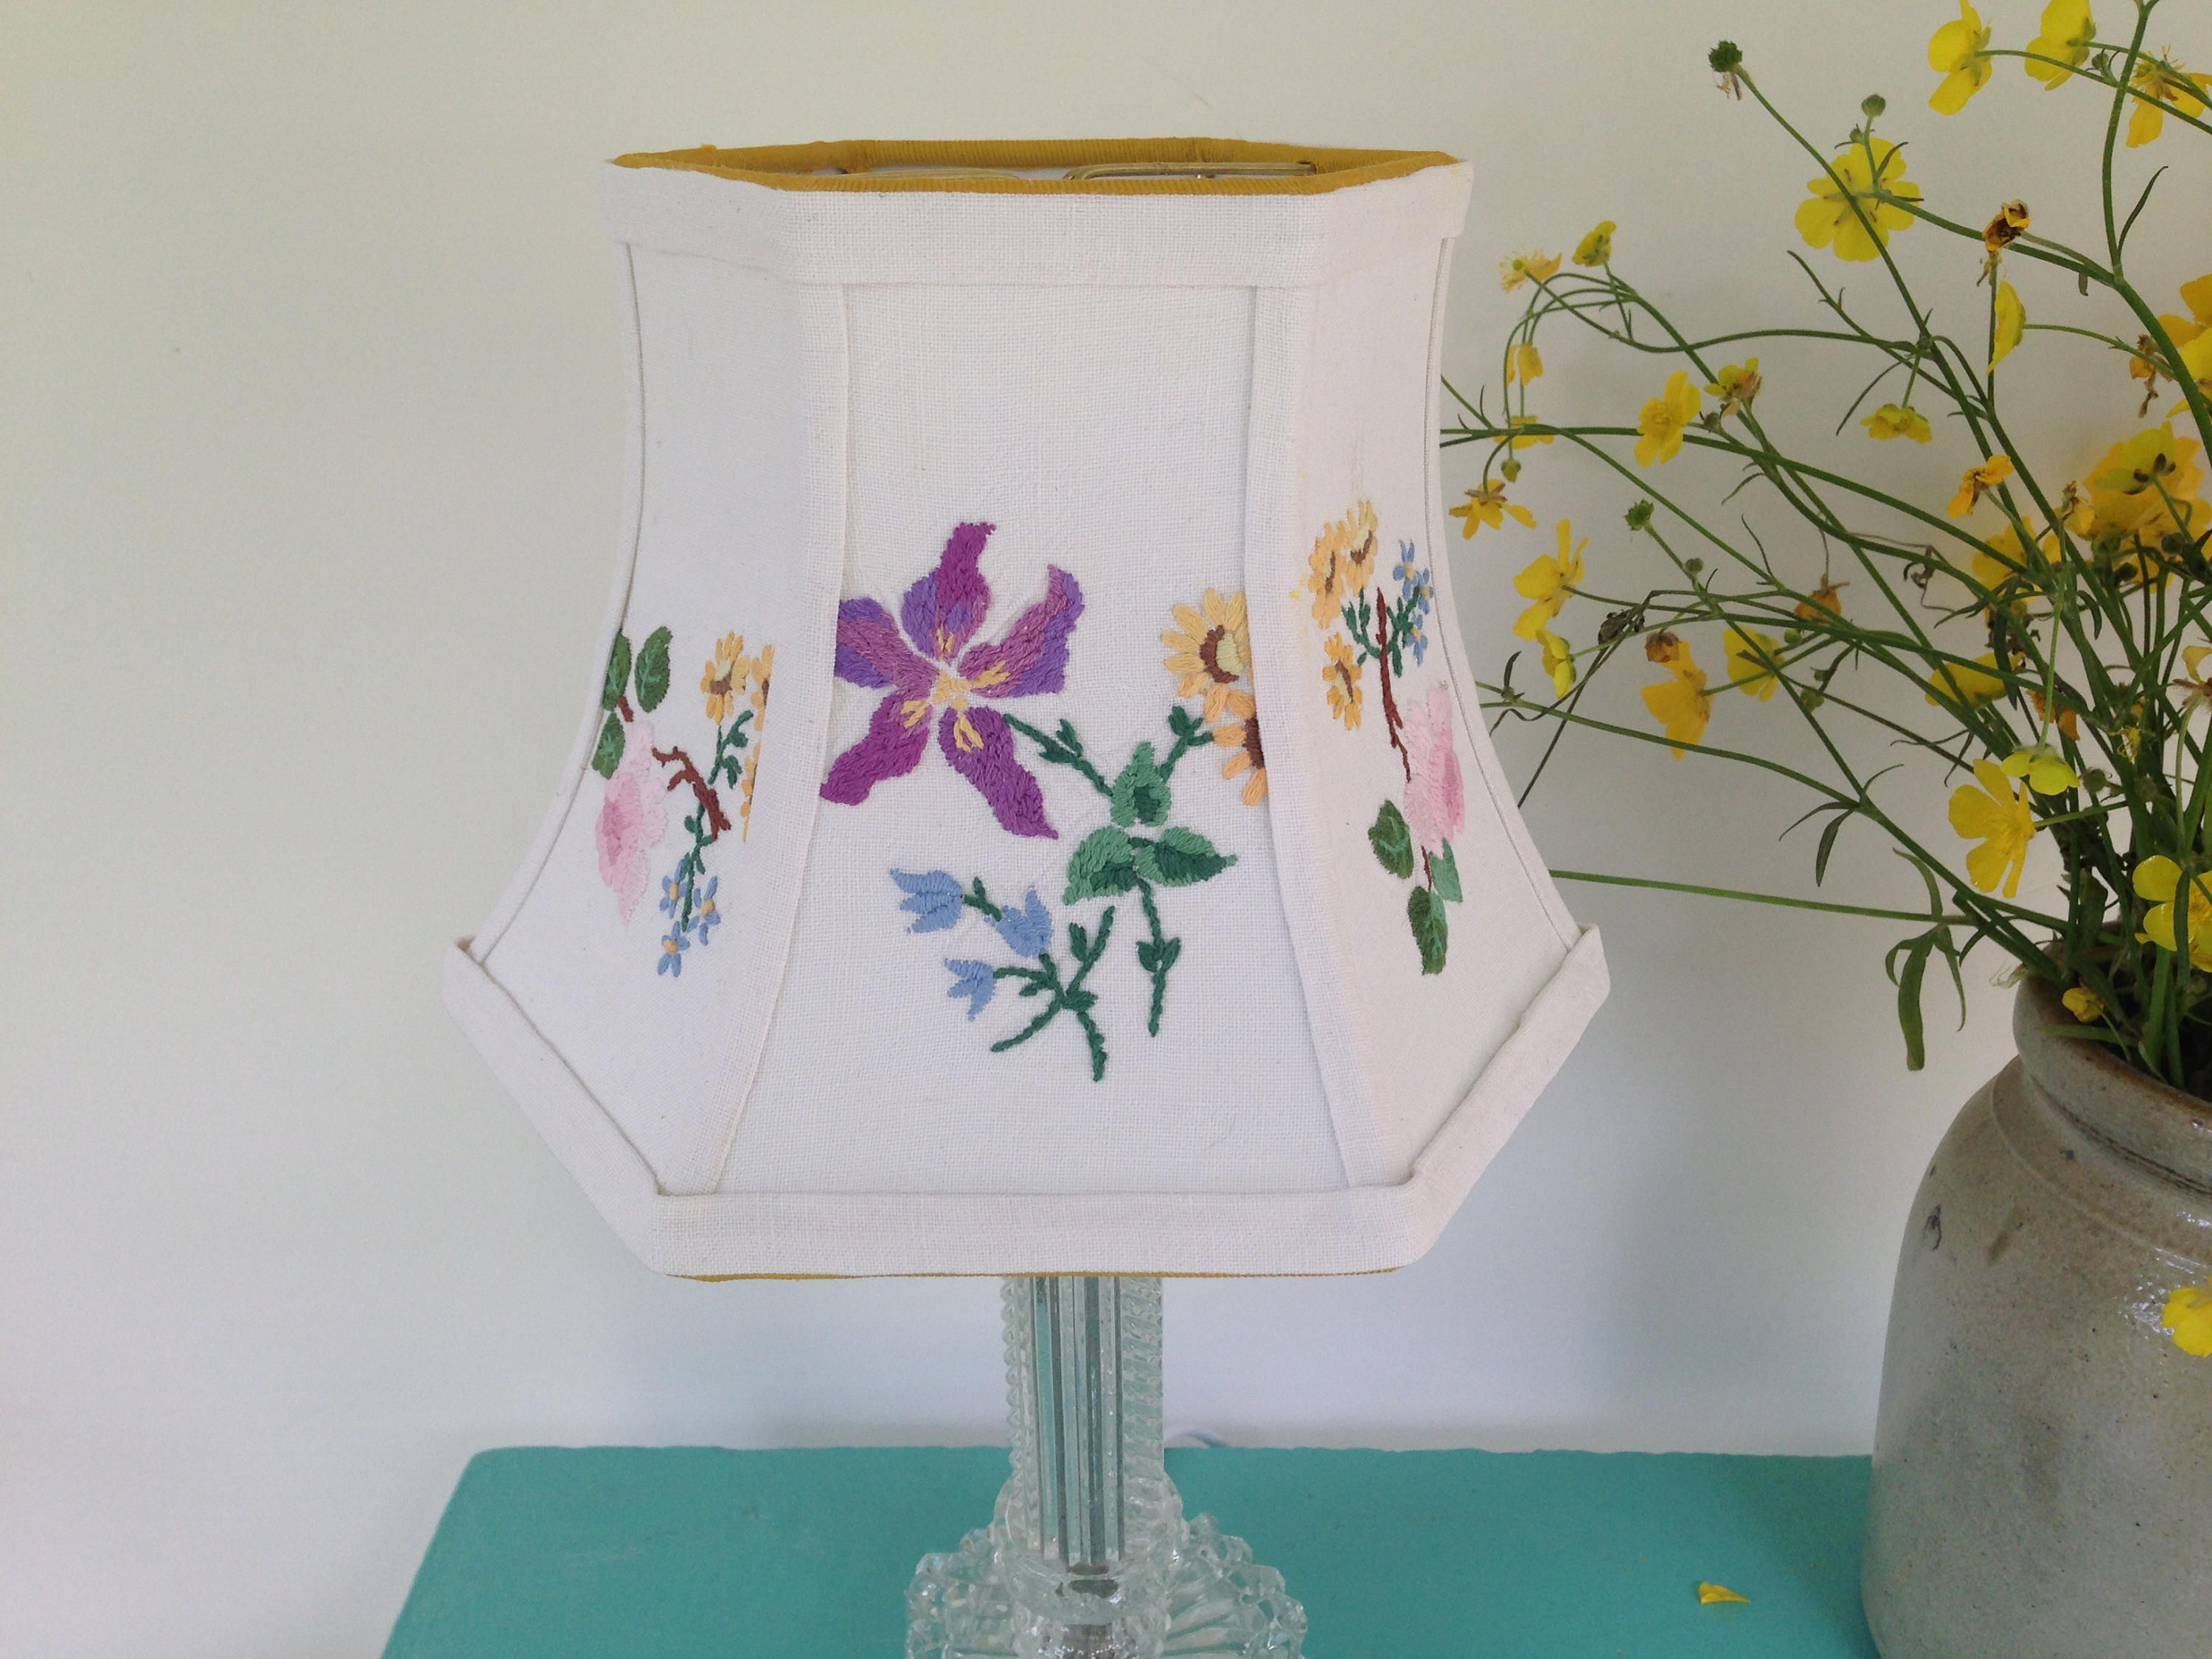 Embroidery floral lamp shade hex bell lampshade pretty colors 5 embroidery floral lamp shade hex bell lampshade pretty colors 5t x 8b x 6 high clip top cottage decor english vintage needlework aloadofball Gallery